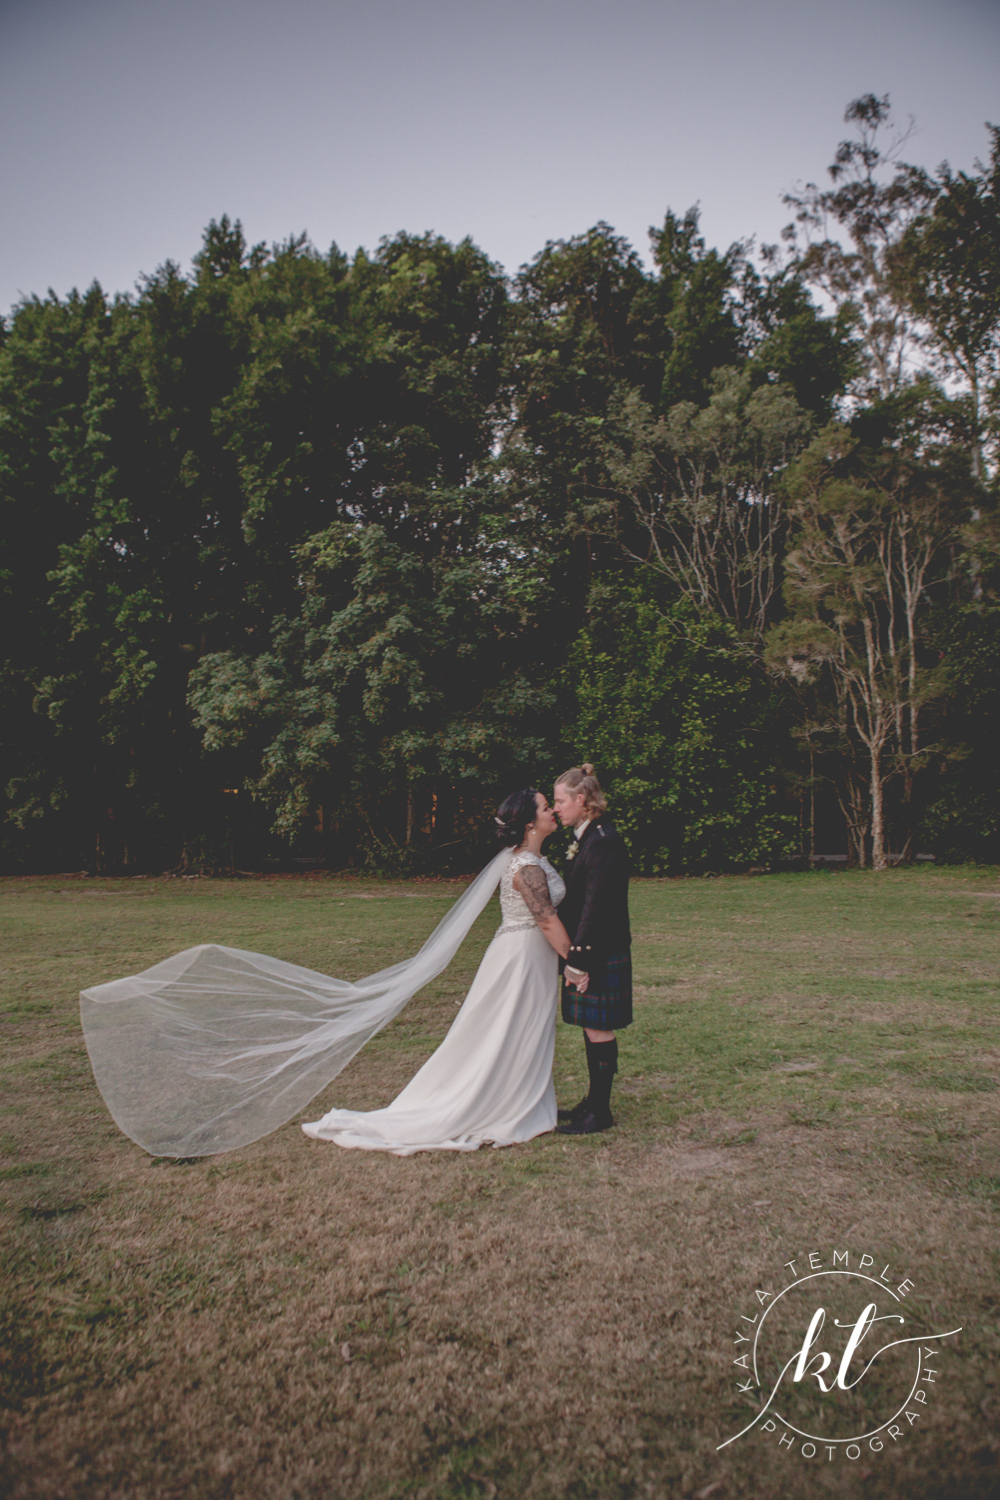 Brisbane_Wedding_Photographer-79.jpg